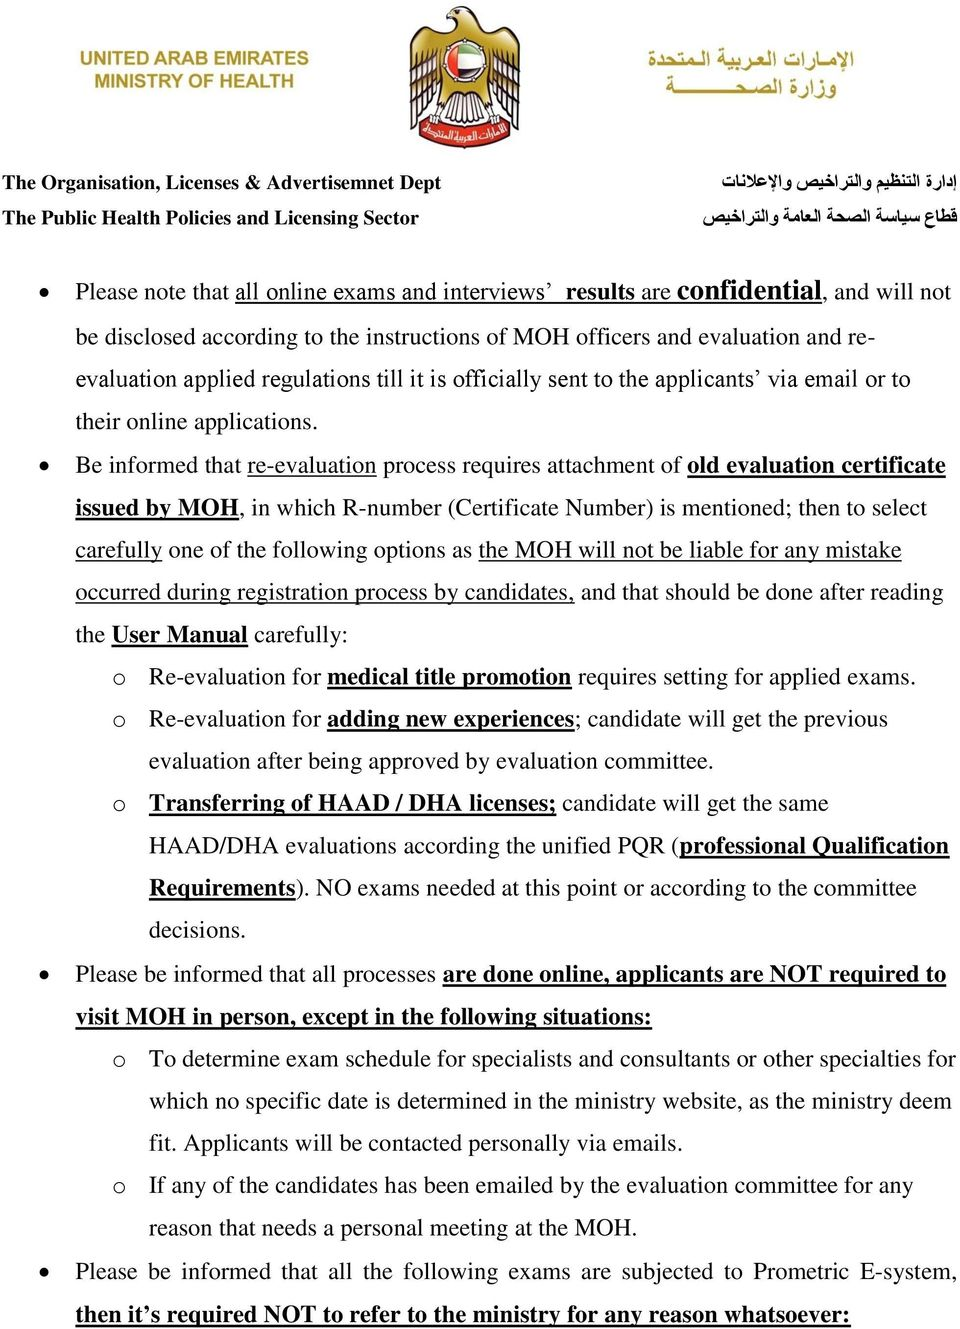 Important notices for evaluation and re-evaluation clients - PDF